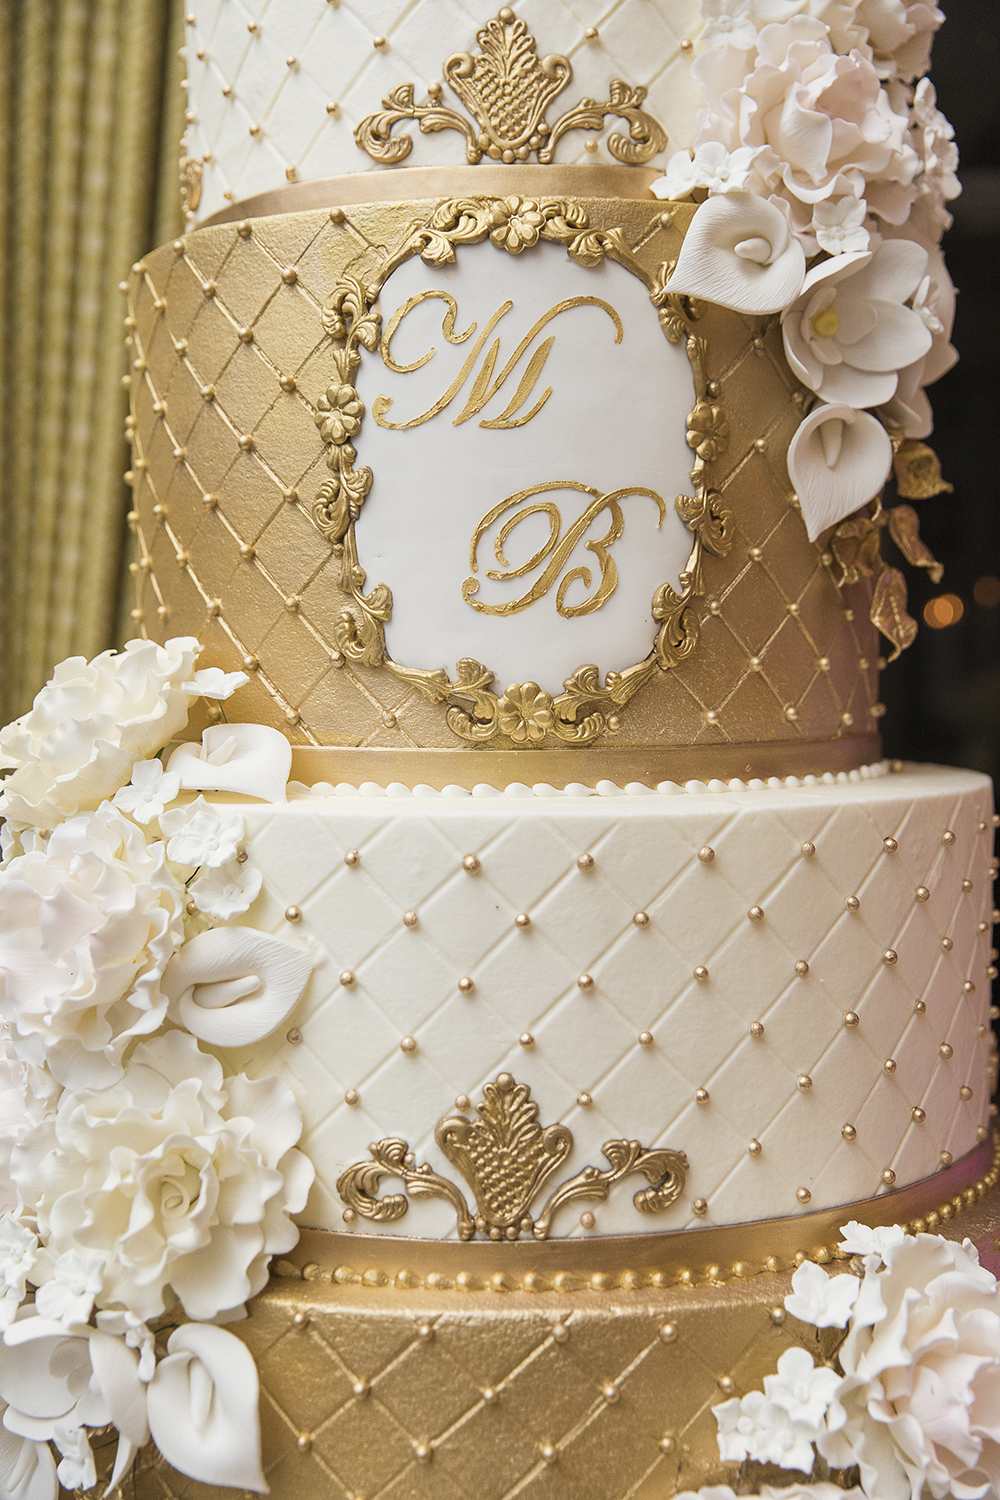 cakes by gina-wedding cake